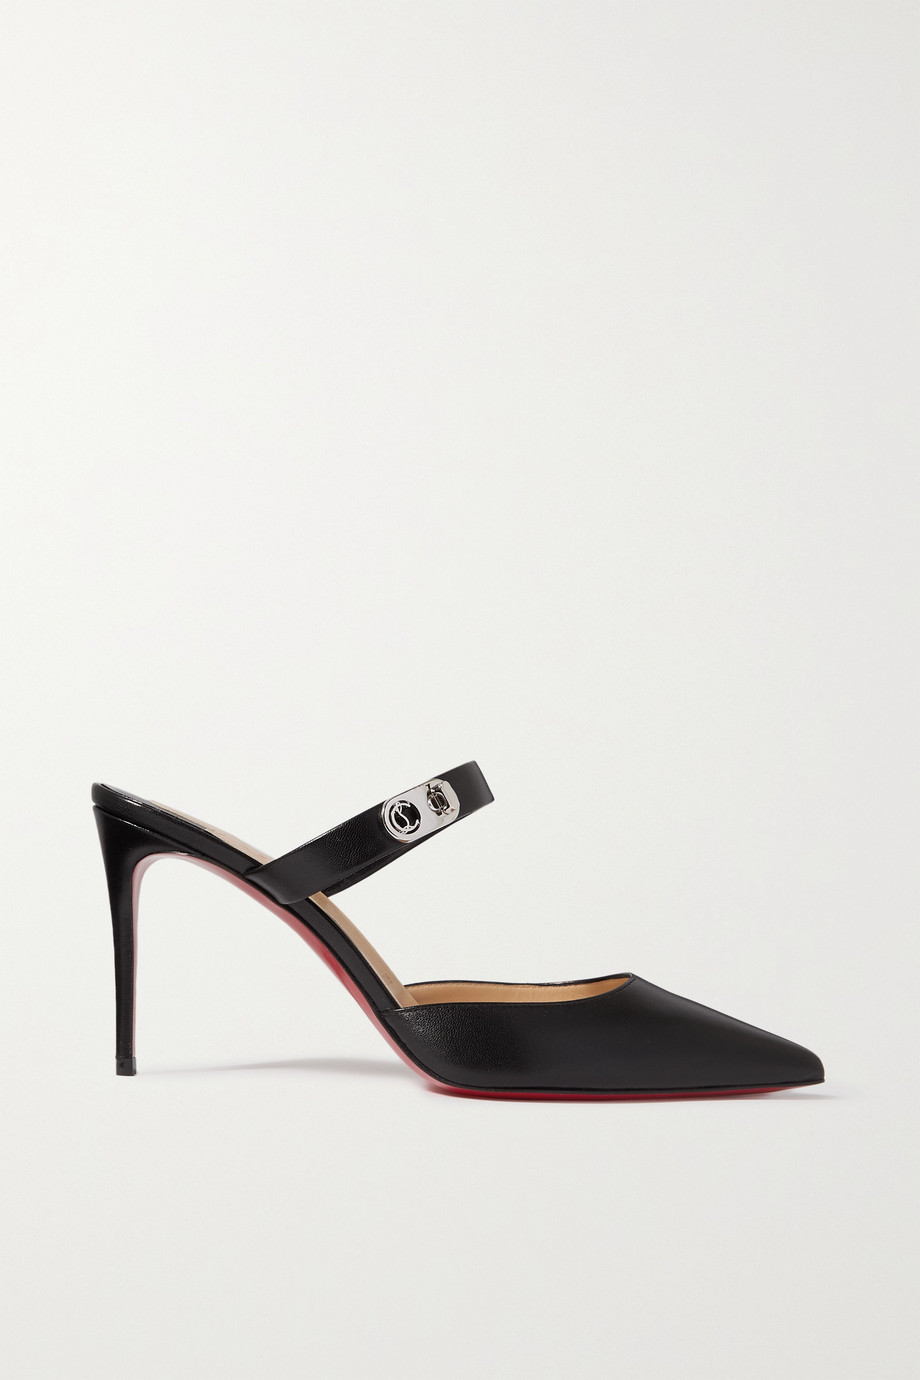 CHRISTIAN LOUBOUTIN Choc Lock 85 embellished leather mules